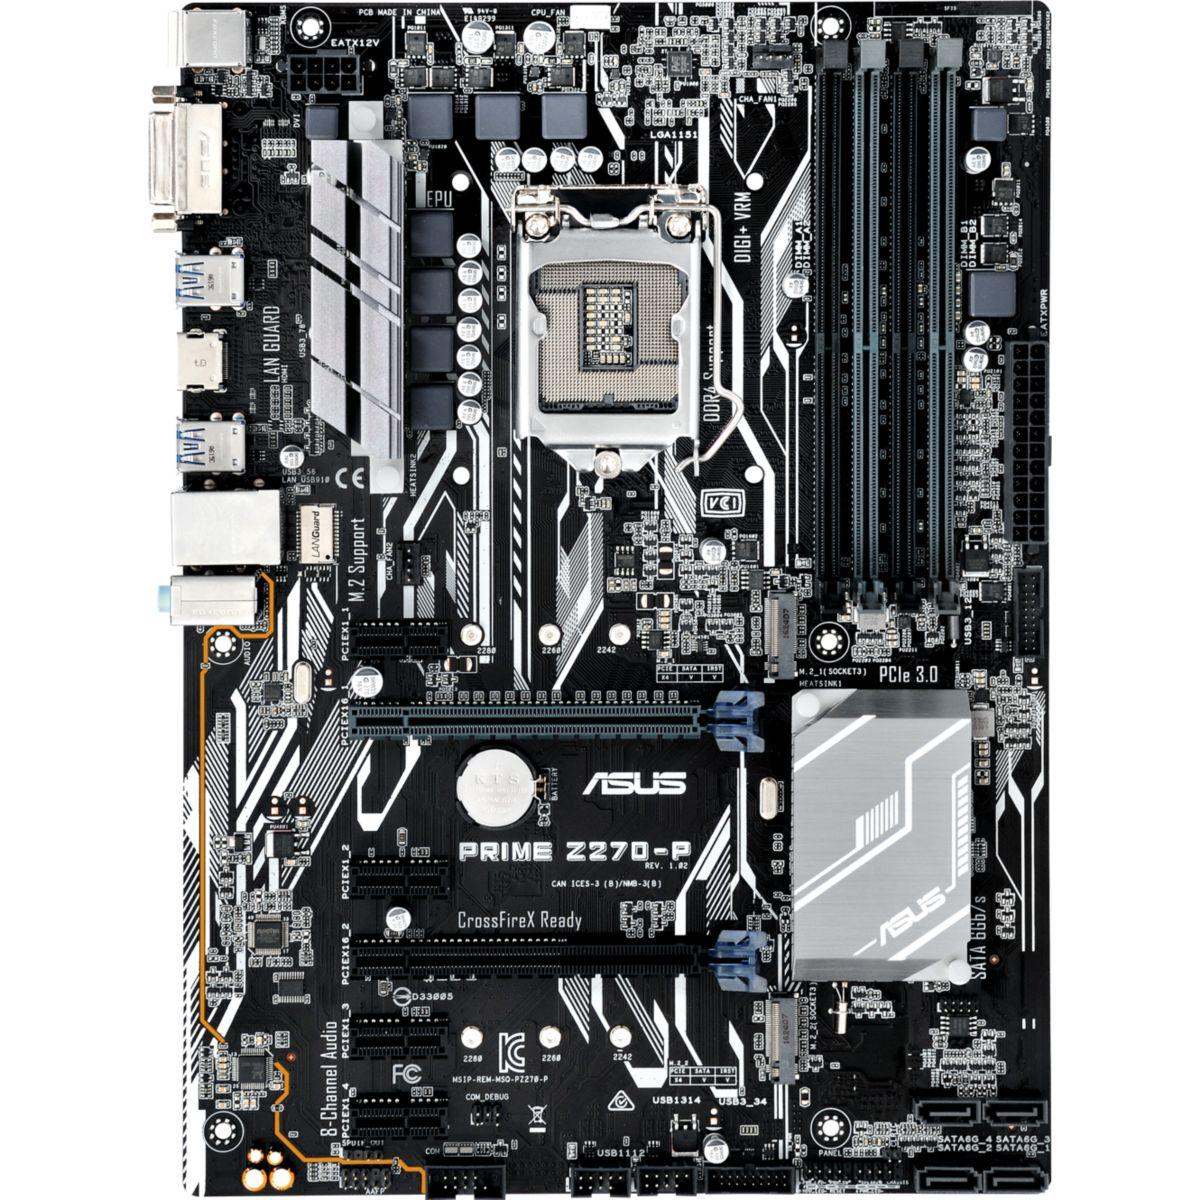 Carte m�re asus prime z270-p atx - 2% de remise imm�diate avec le code : fete2 (photo)